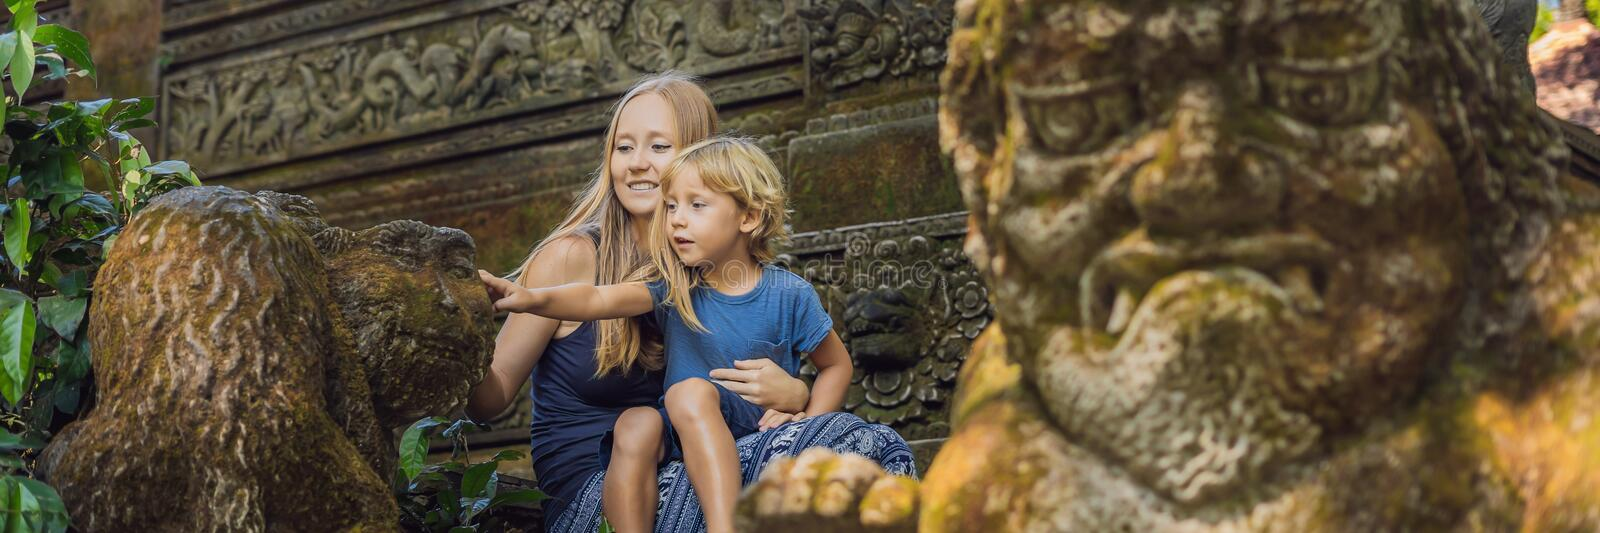 Mom and son travelers discovering Ubud forest in Monkey forest, Bali Indonesia. Traveling with children concept BANNER, long forma stock photo